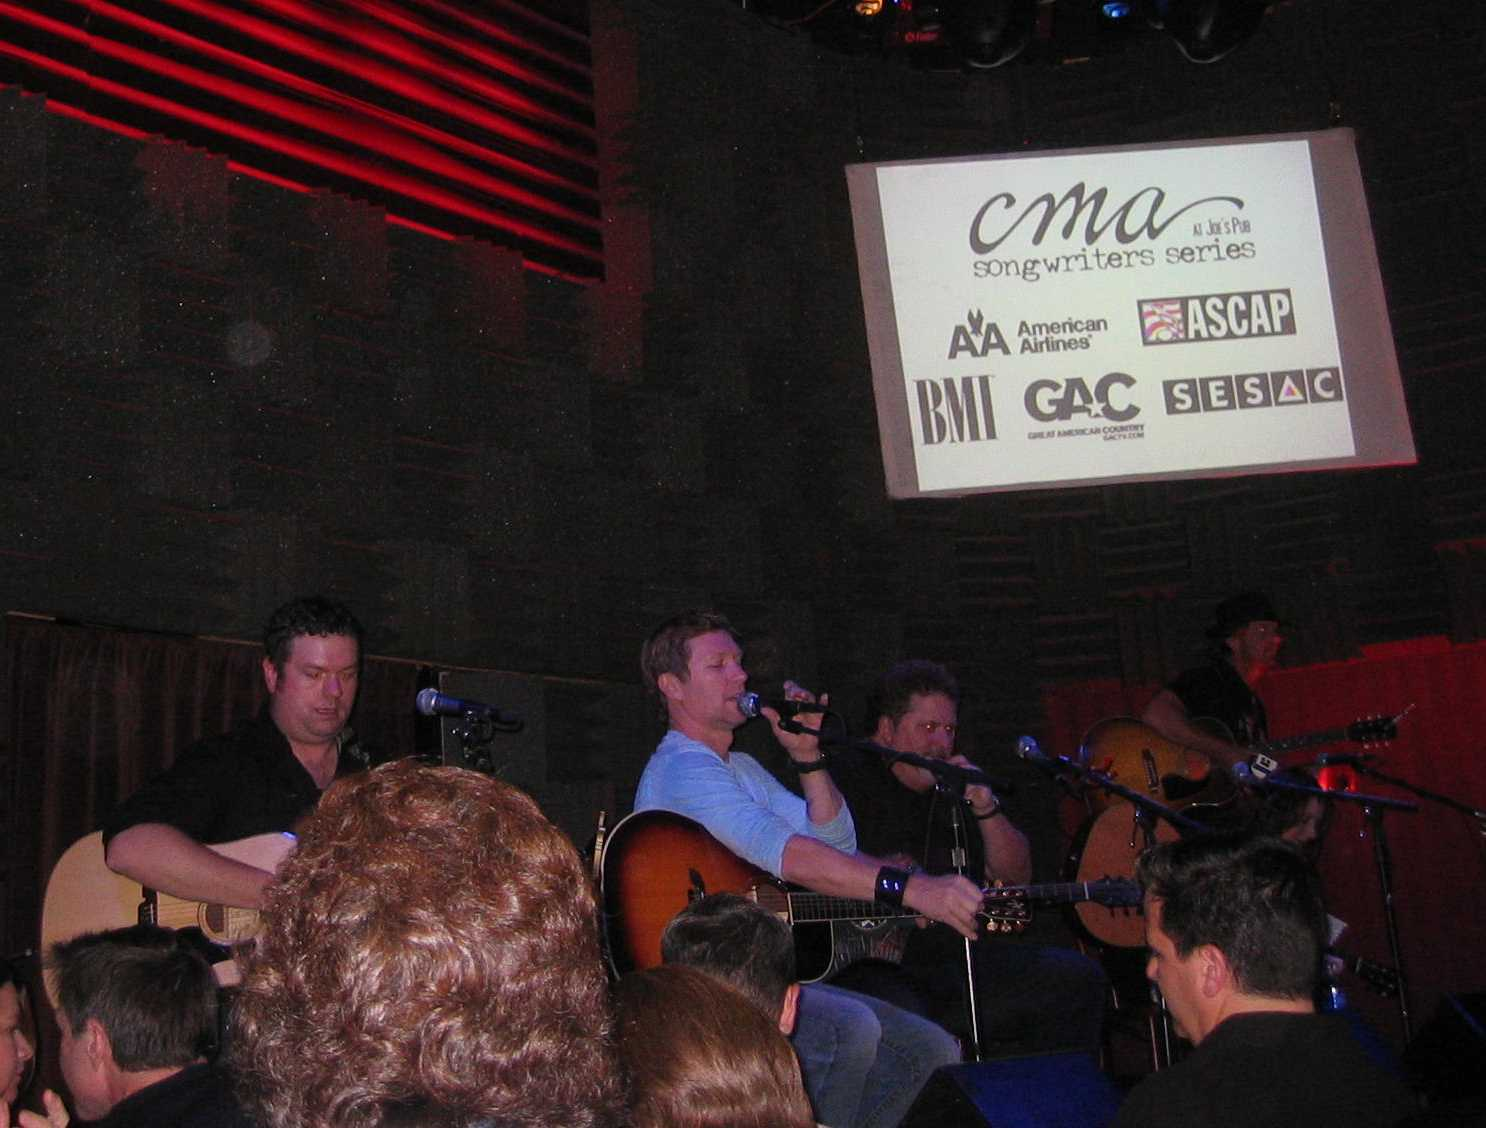 CMA Song Writers 20081029